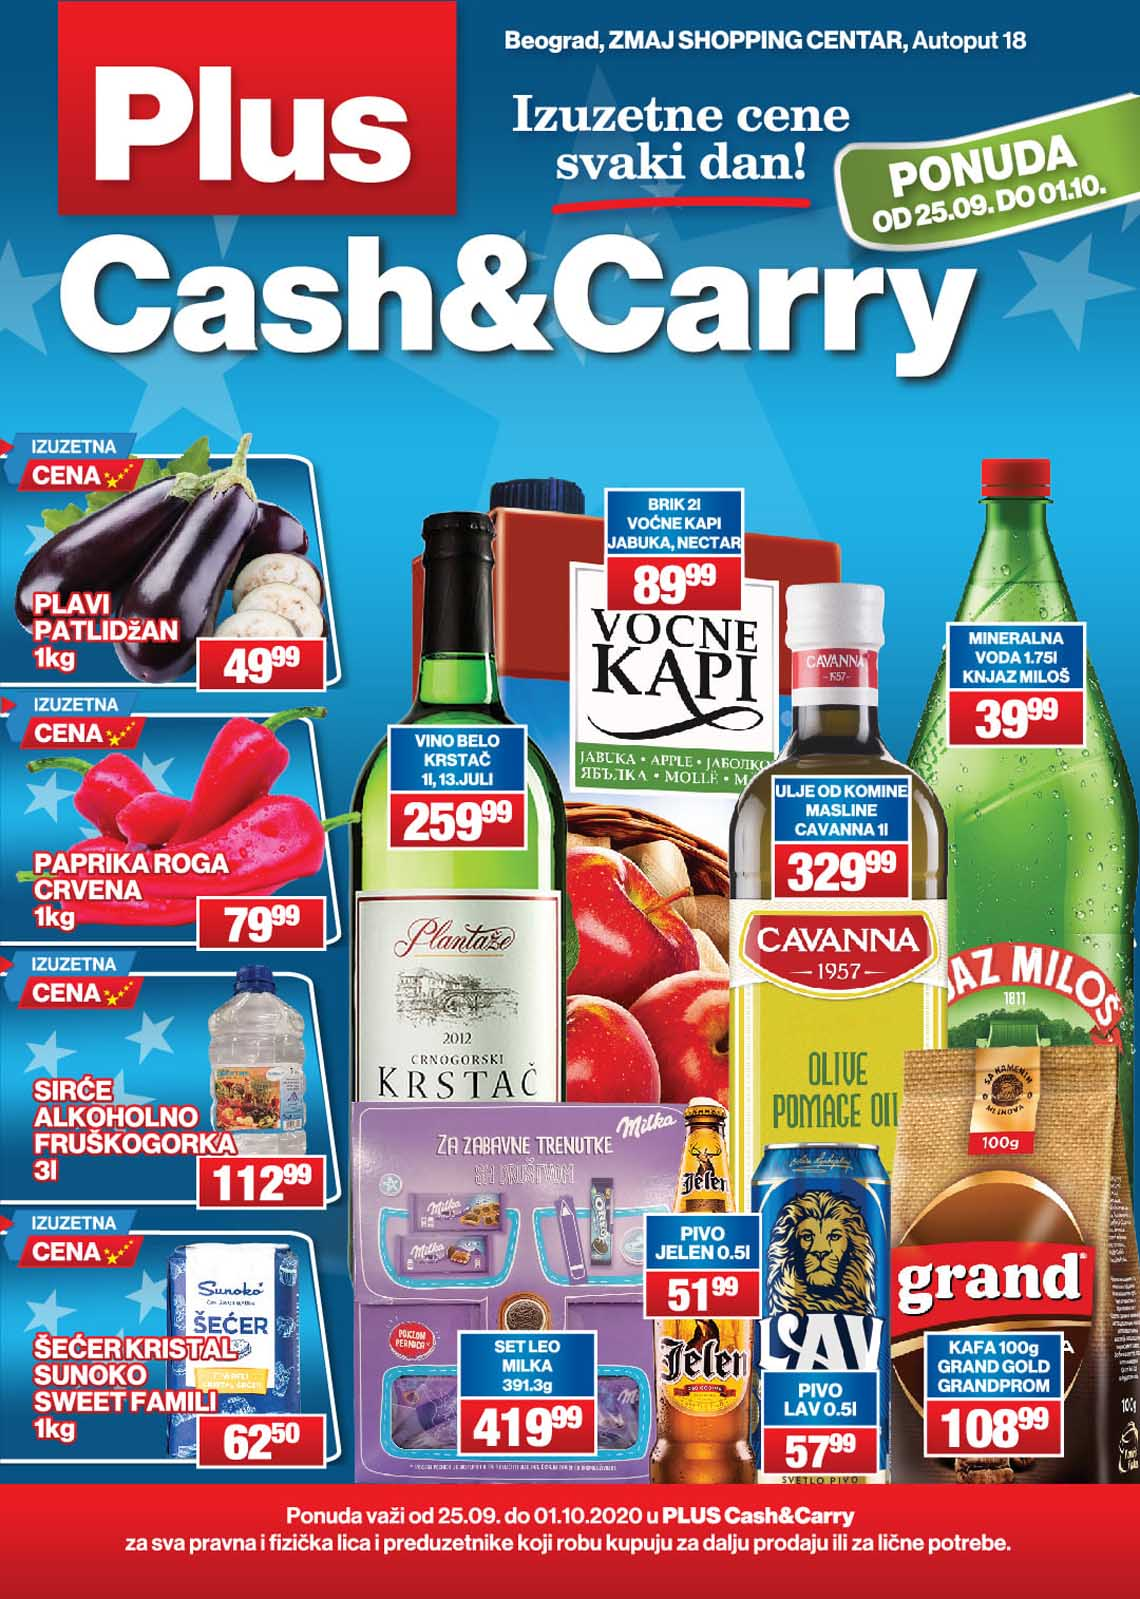 PLUS CASH CARRY AKCIJA KATALOG AKCIJA